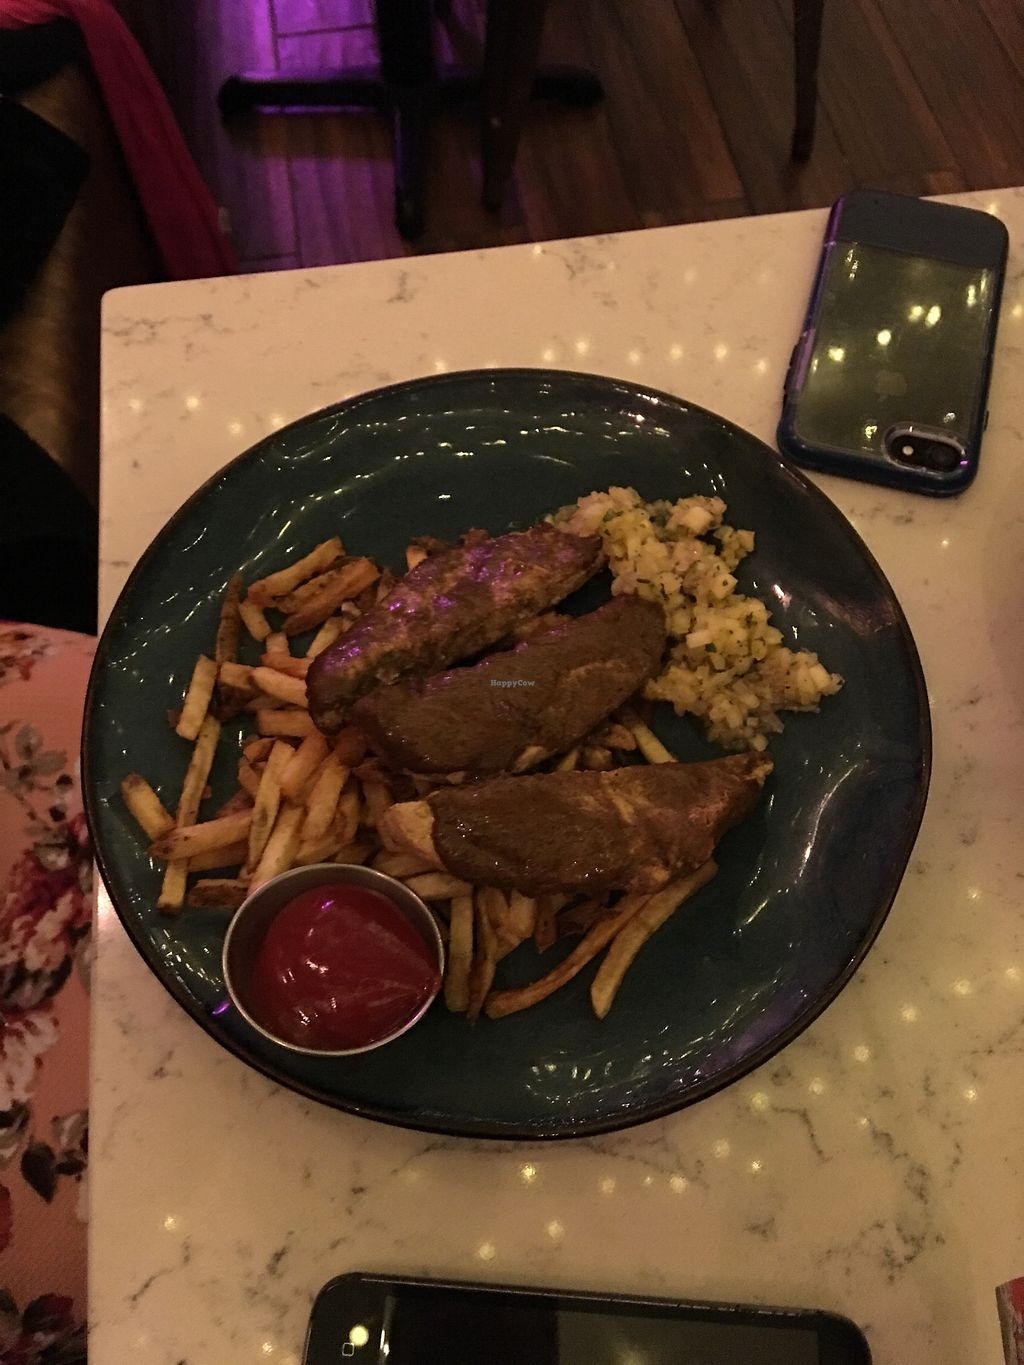 """Photo of Urban Vegan Kitchen  by <a href=""""/members/profile/RickyDerose"""">RickyDerose</a> <br/>Jerks chicken with fries <br/> February 1, 2018  - <a href='/contact/abuse/image/31266/353773'>Report</a>"""